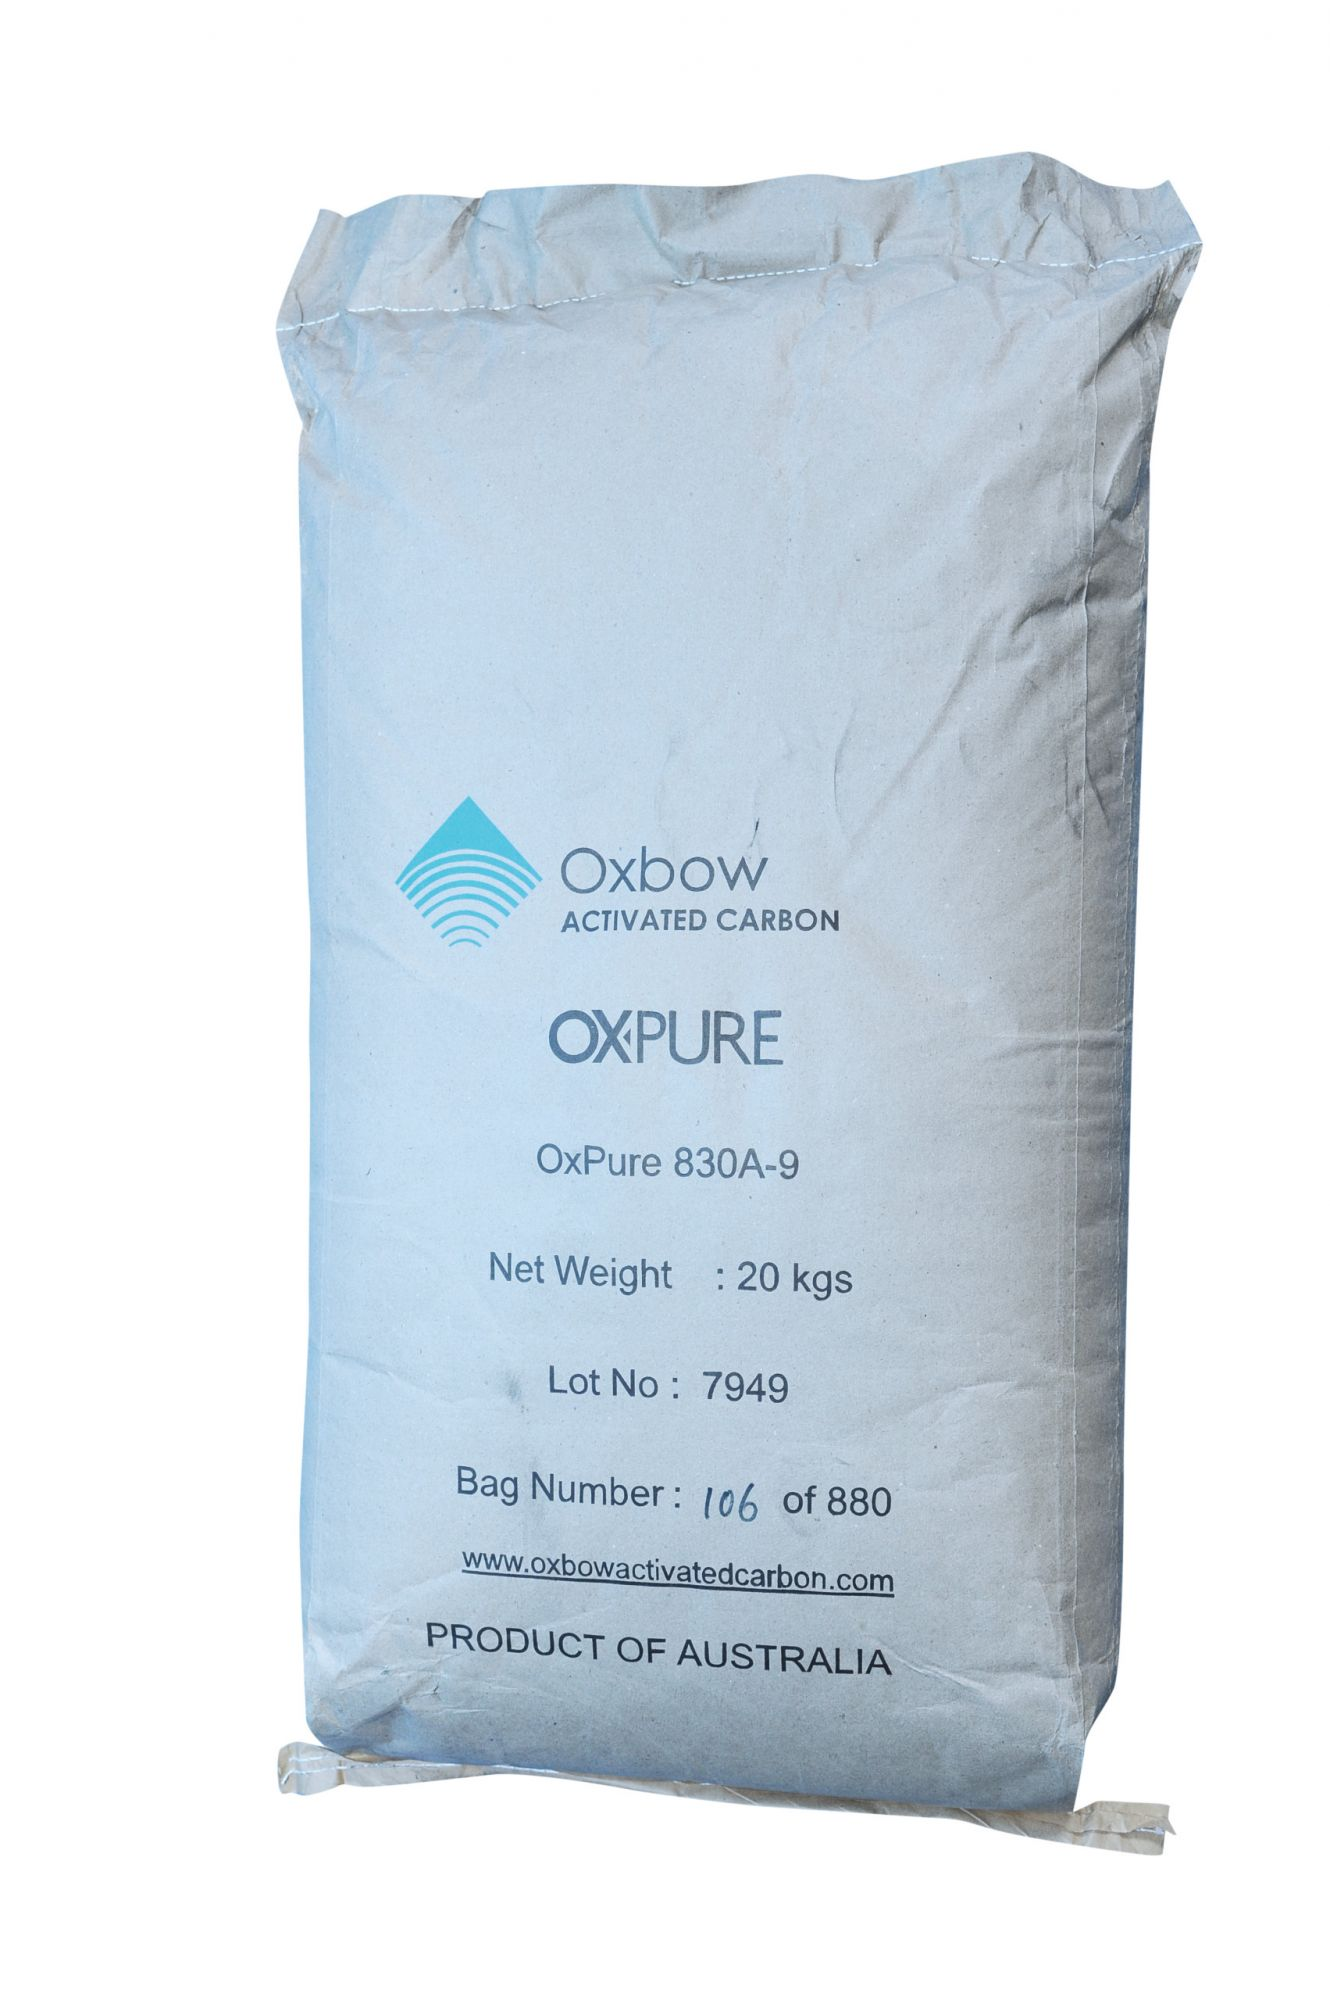 Oxbow Activated Carbon  - Australia